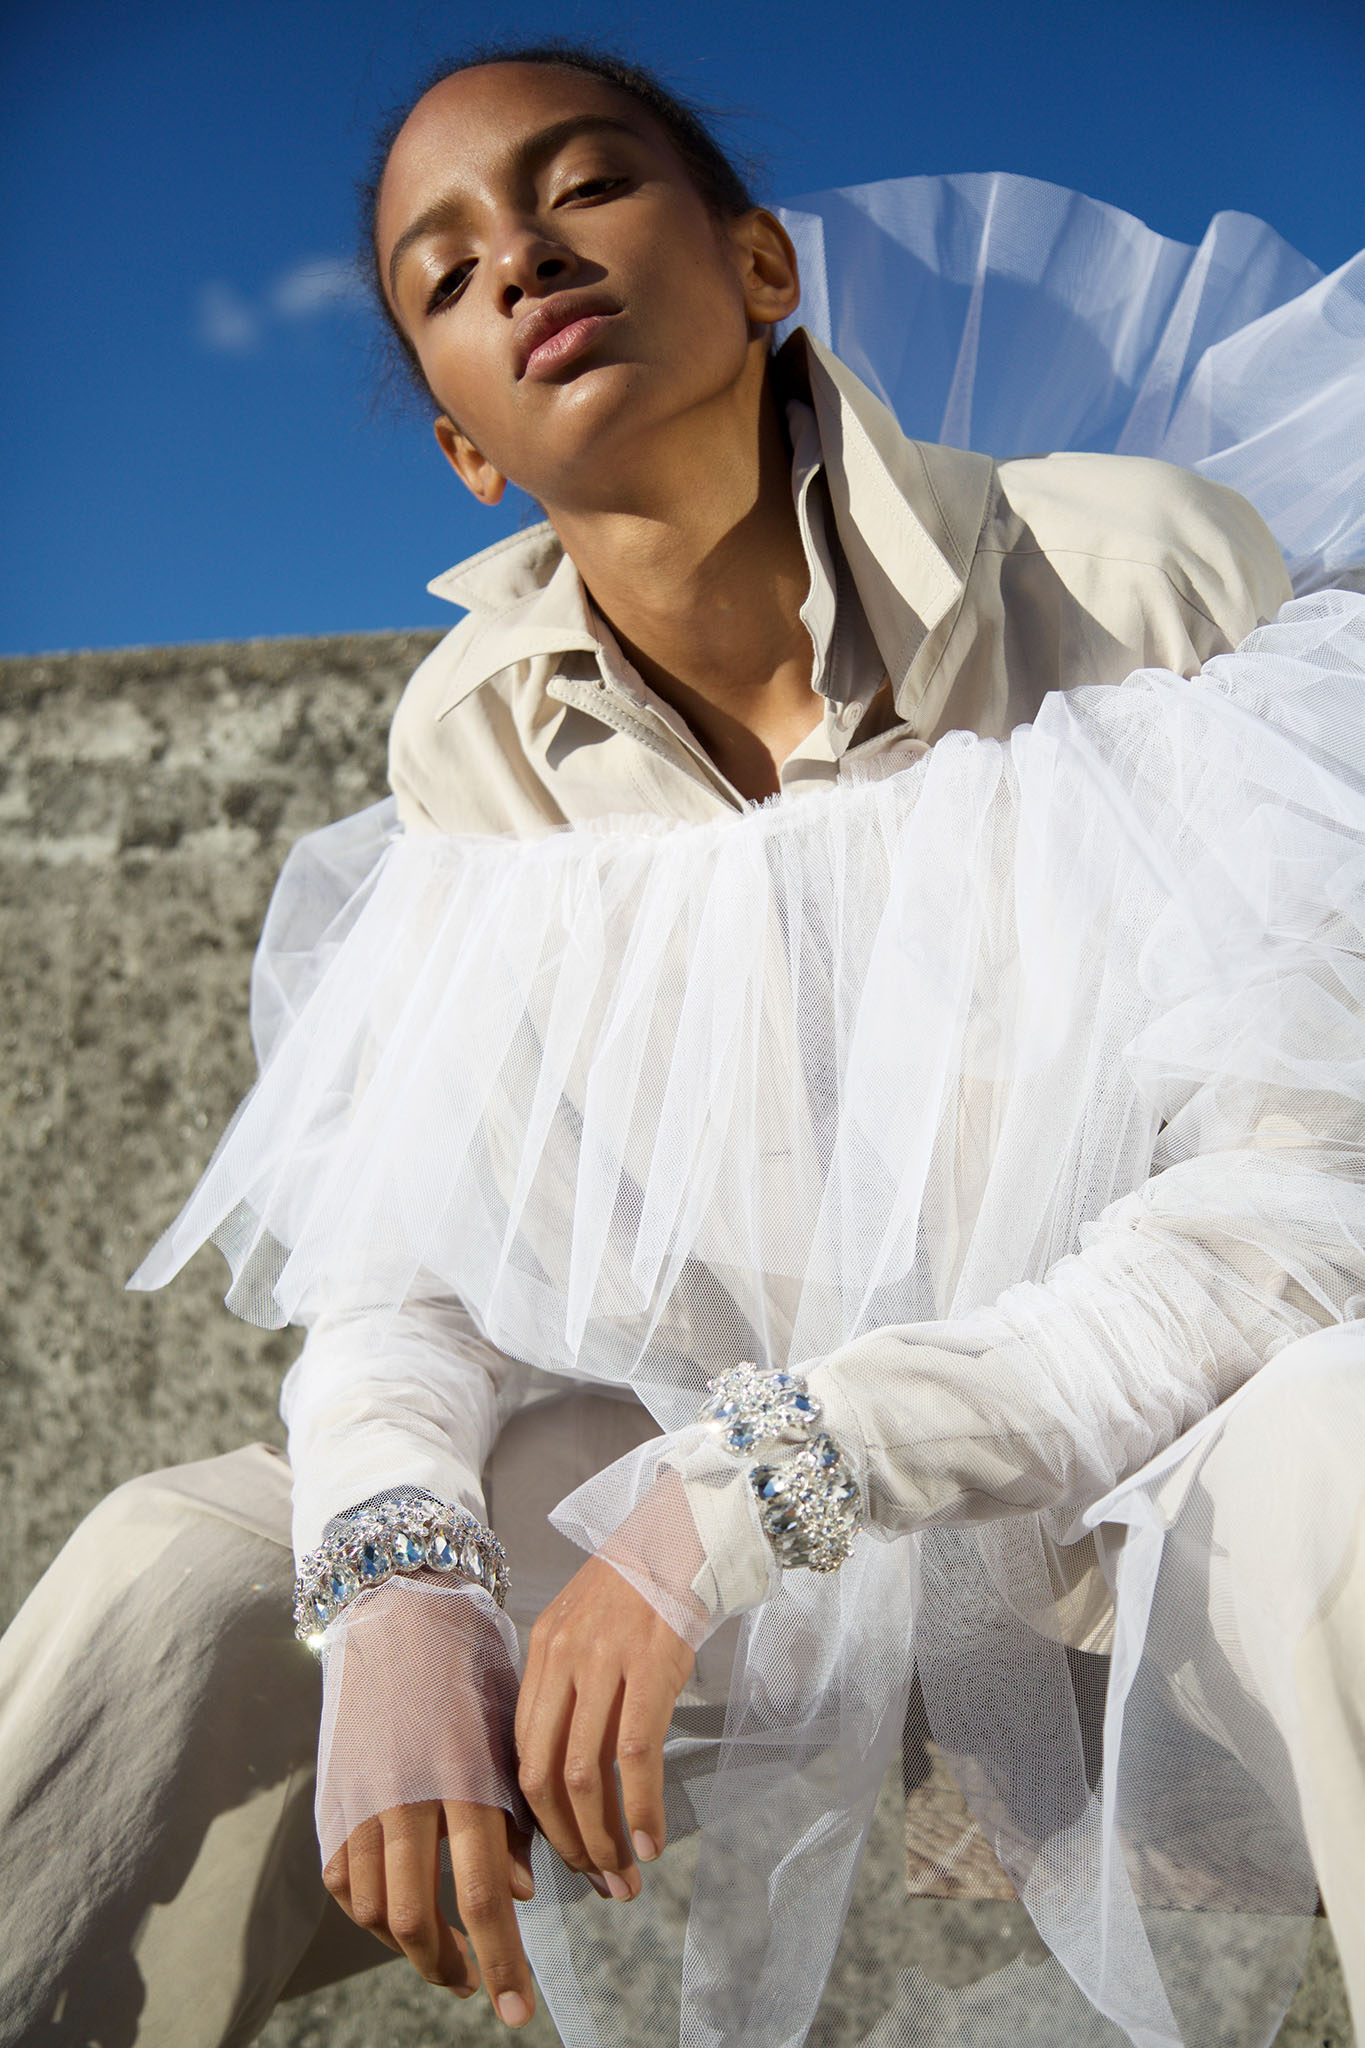 Stella McCartney cotton shirt and trousers, Emanuel Ungaro tulle top and Nicopanda cuffs.